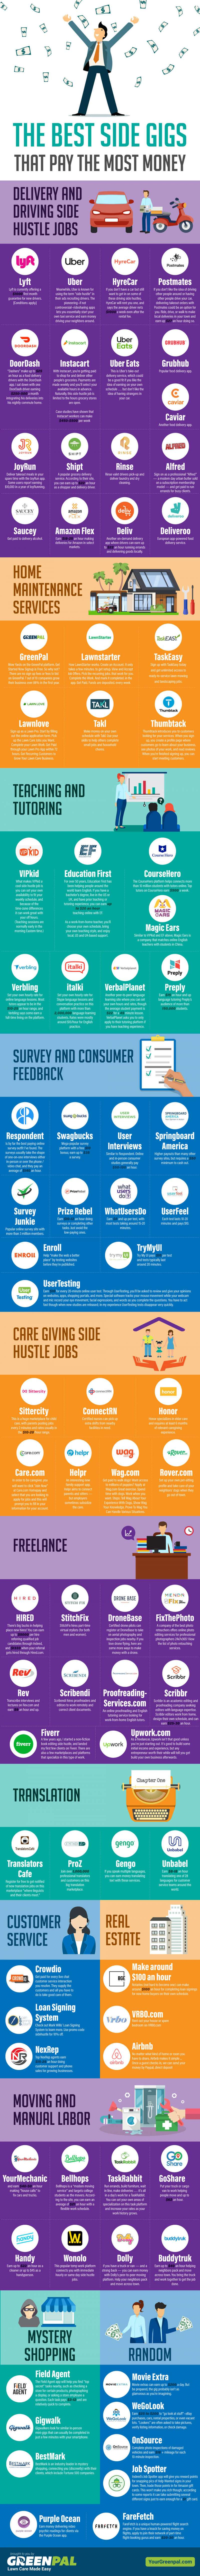 99 Side Hustle Ideas You Can Start Today